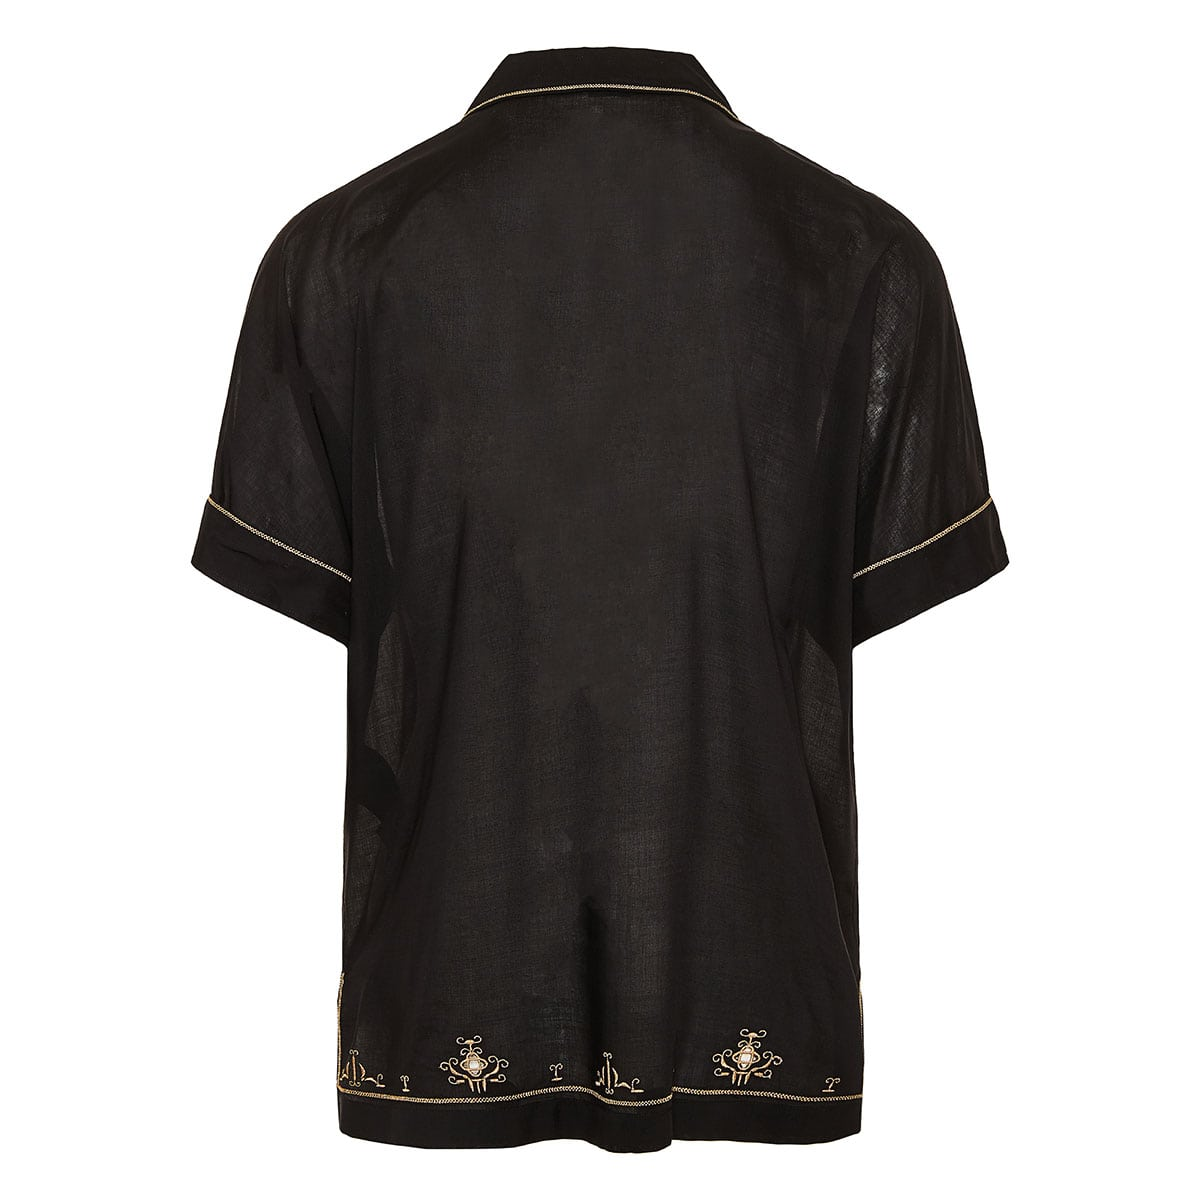 Tunic shirt with metallic embroideries